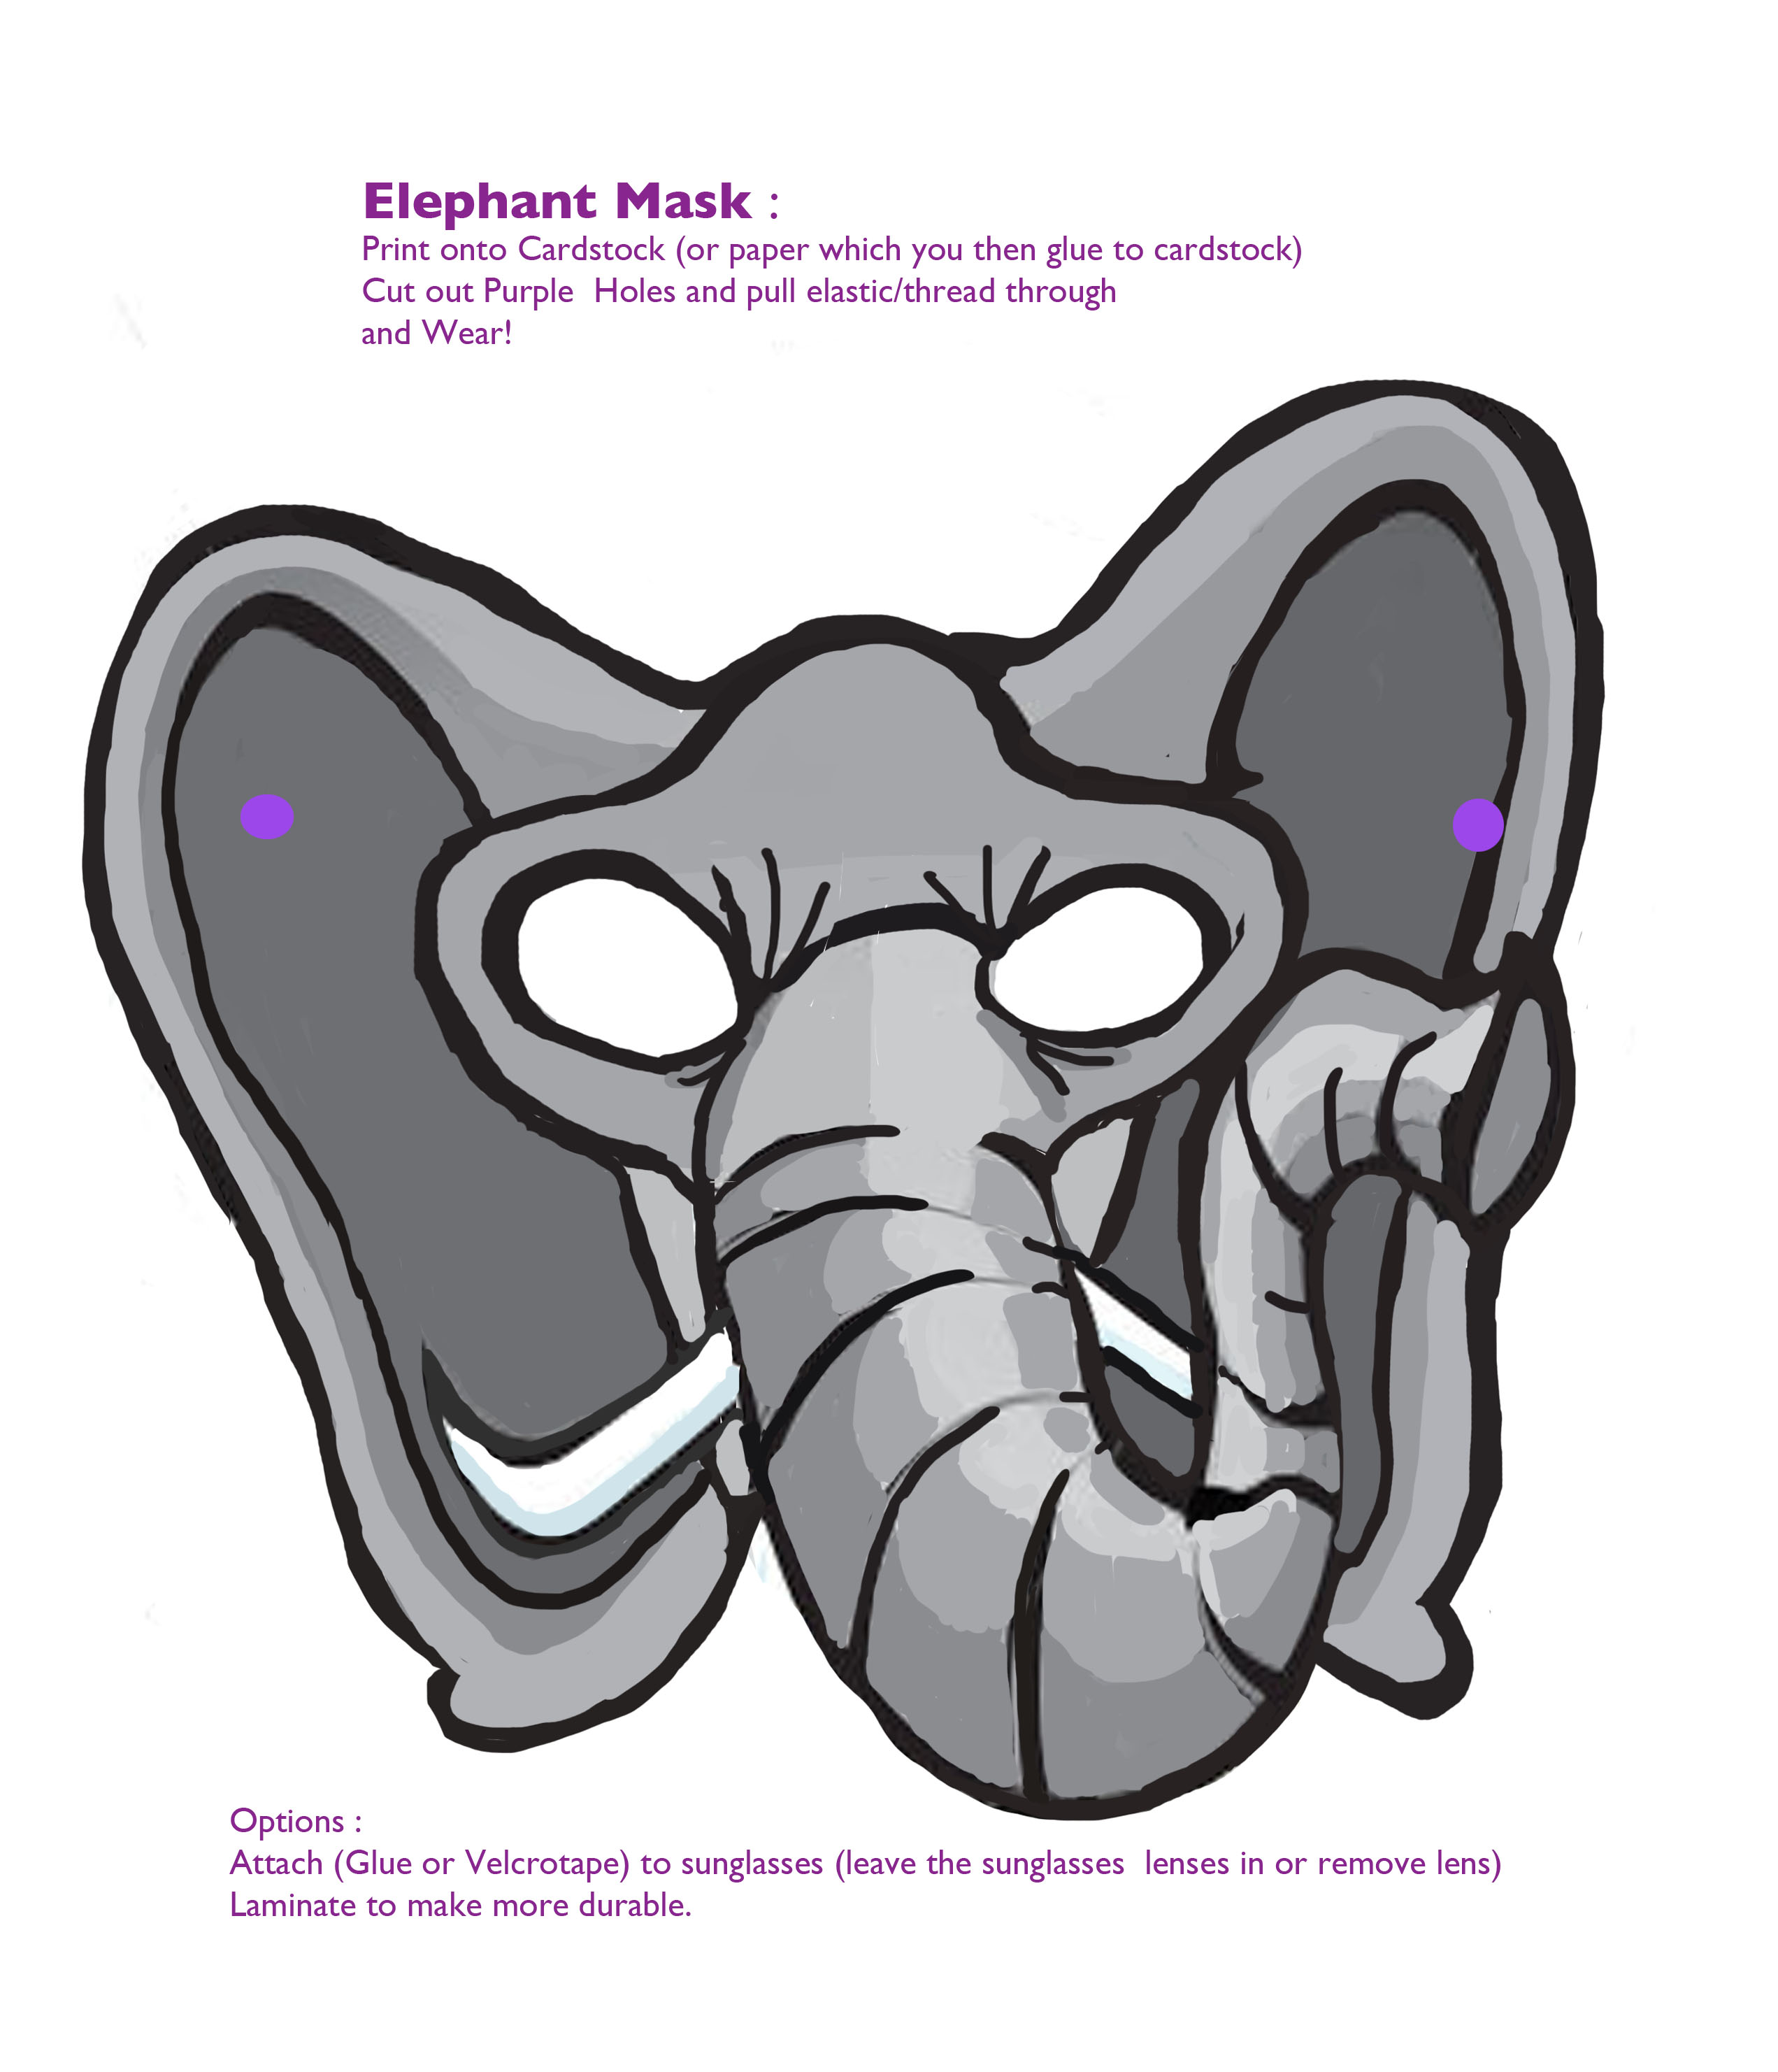 It's just a graphic of Elephant Mask Printable regarding cardboard